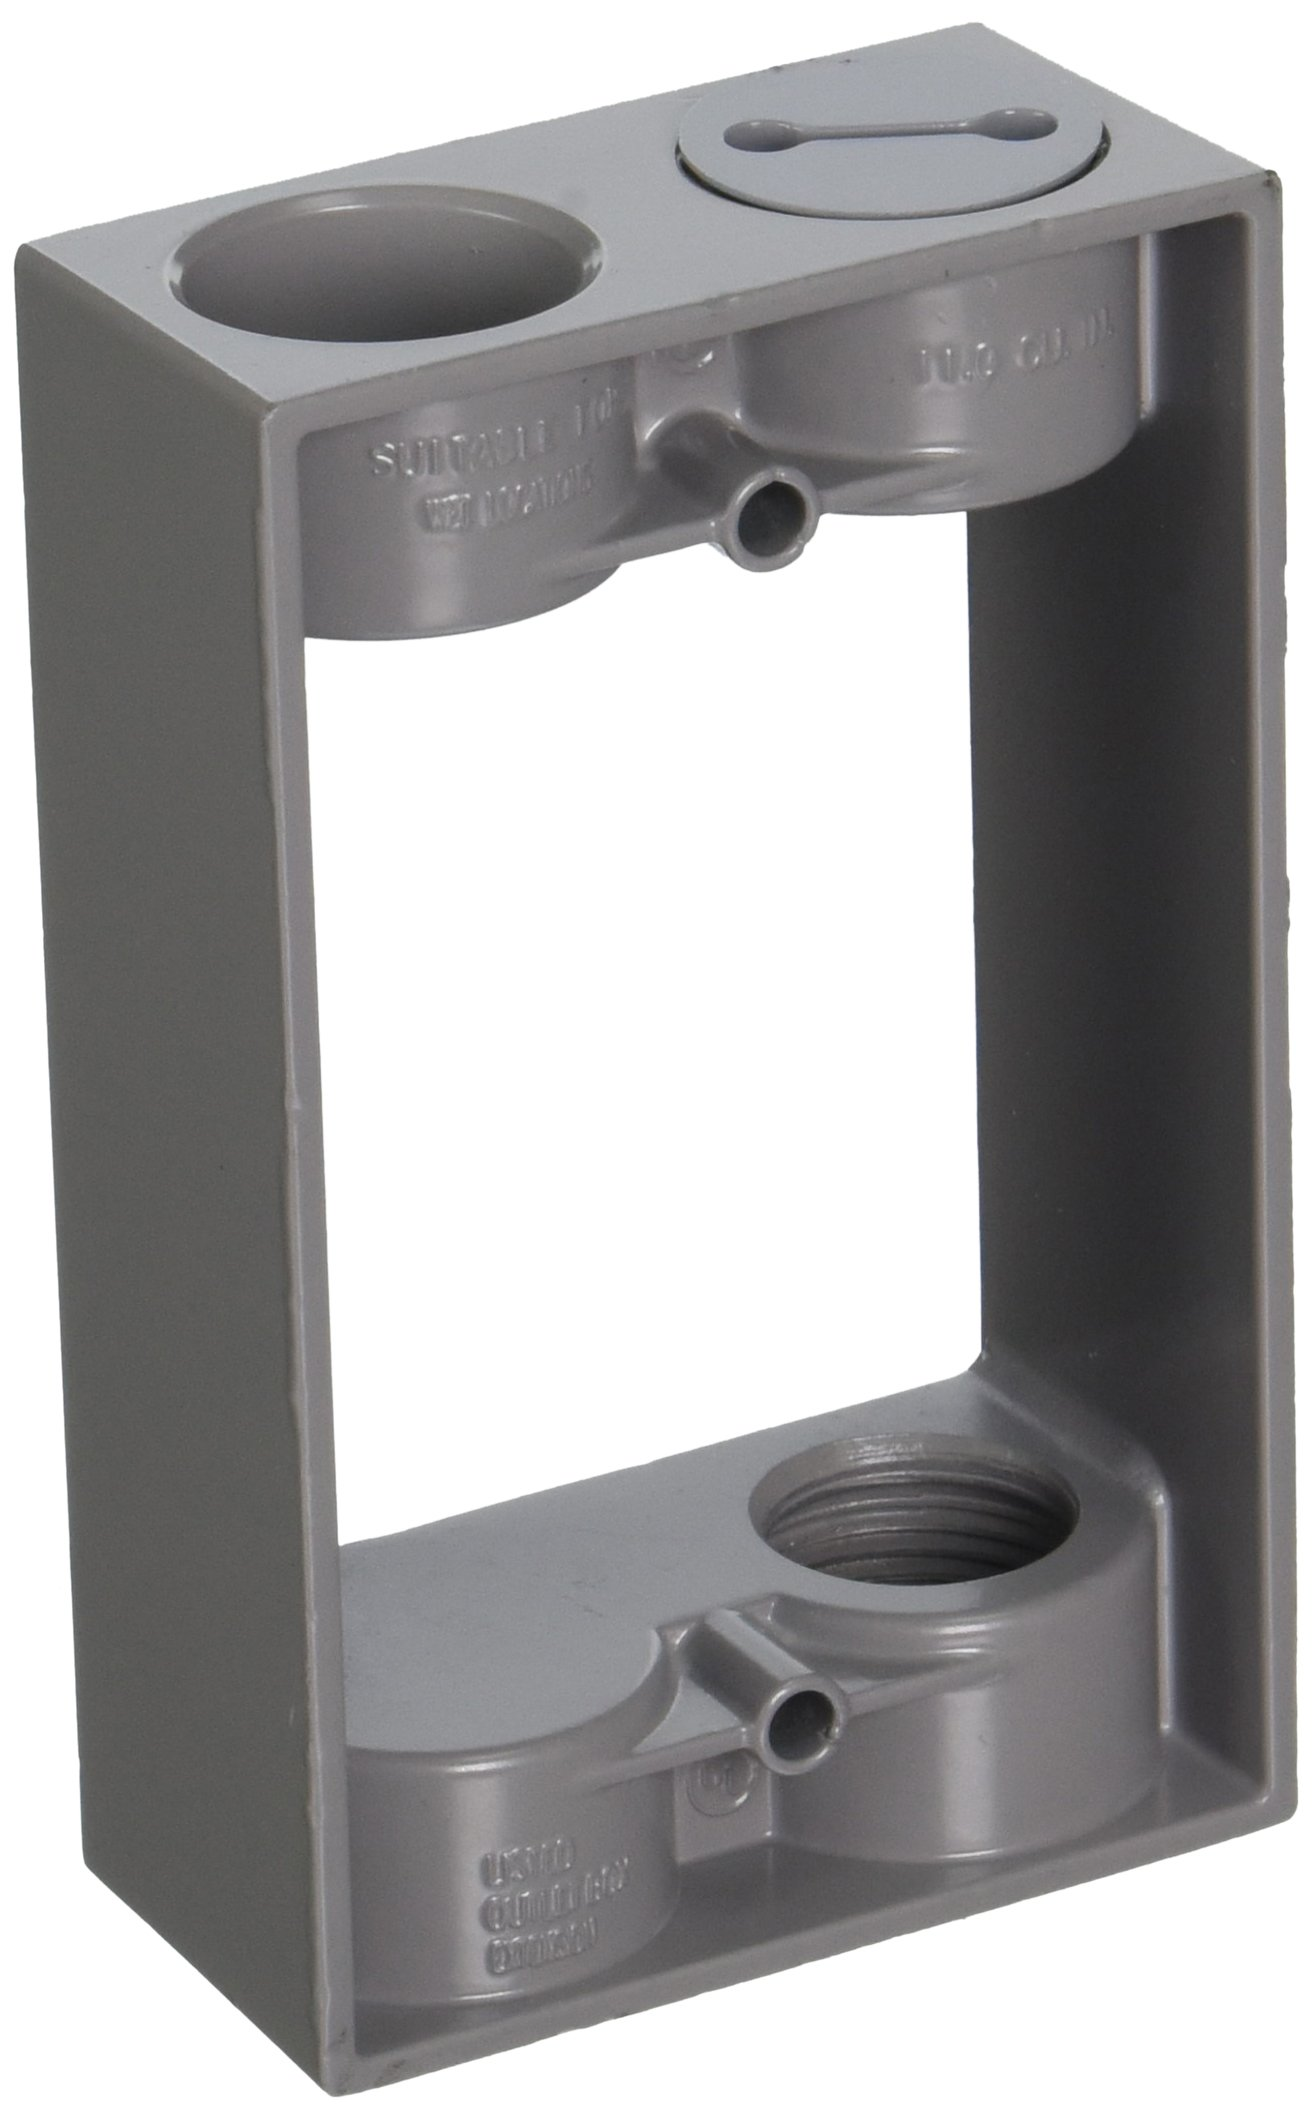 Hubbell-Bell 5403-0 Weatherproof Box Extension Adapter, 5-1/4-Inch X 3-1/2-Inch